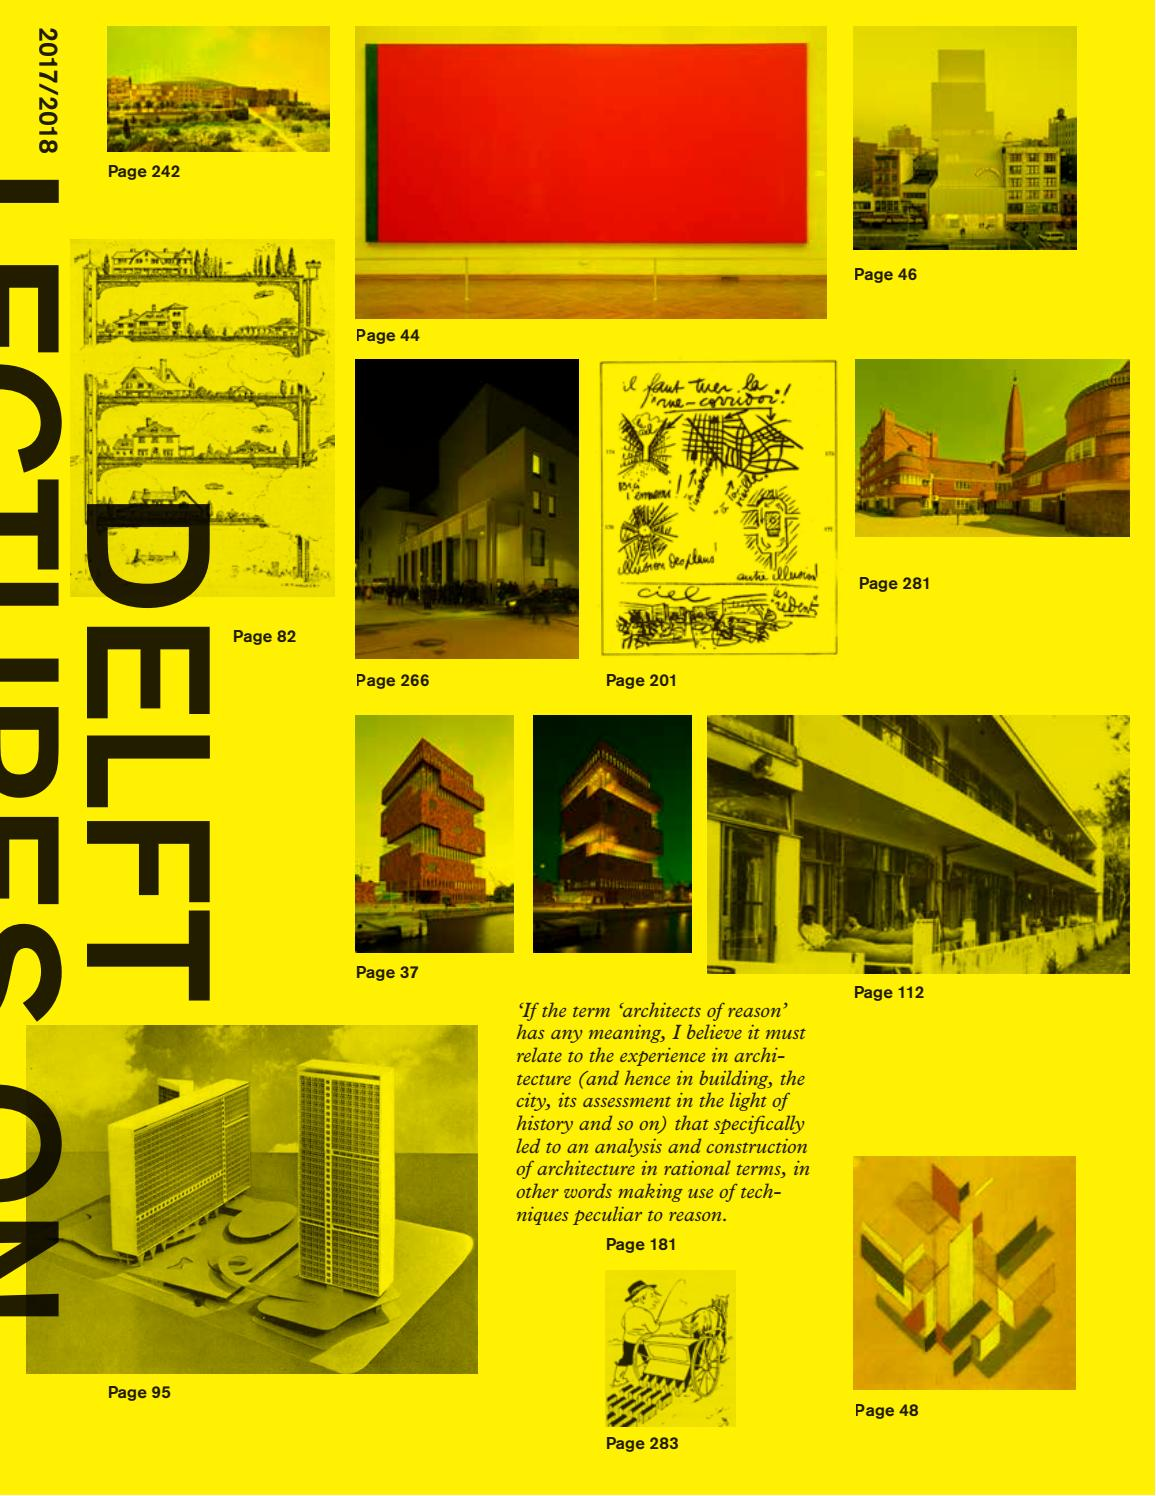 Superstudio Erfahrungen Delft Lectures On Architectural Design